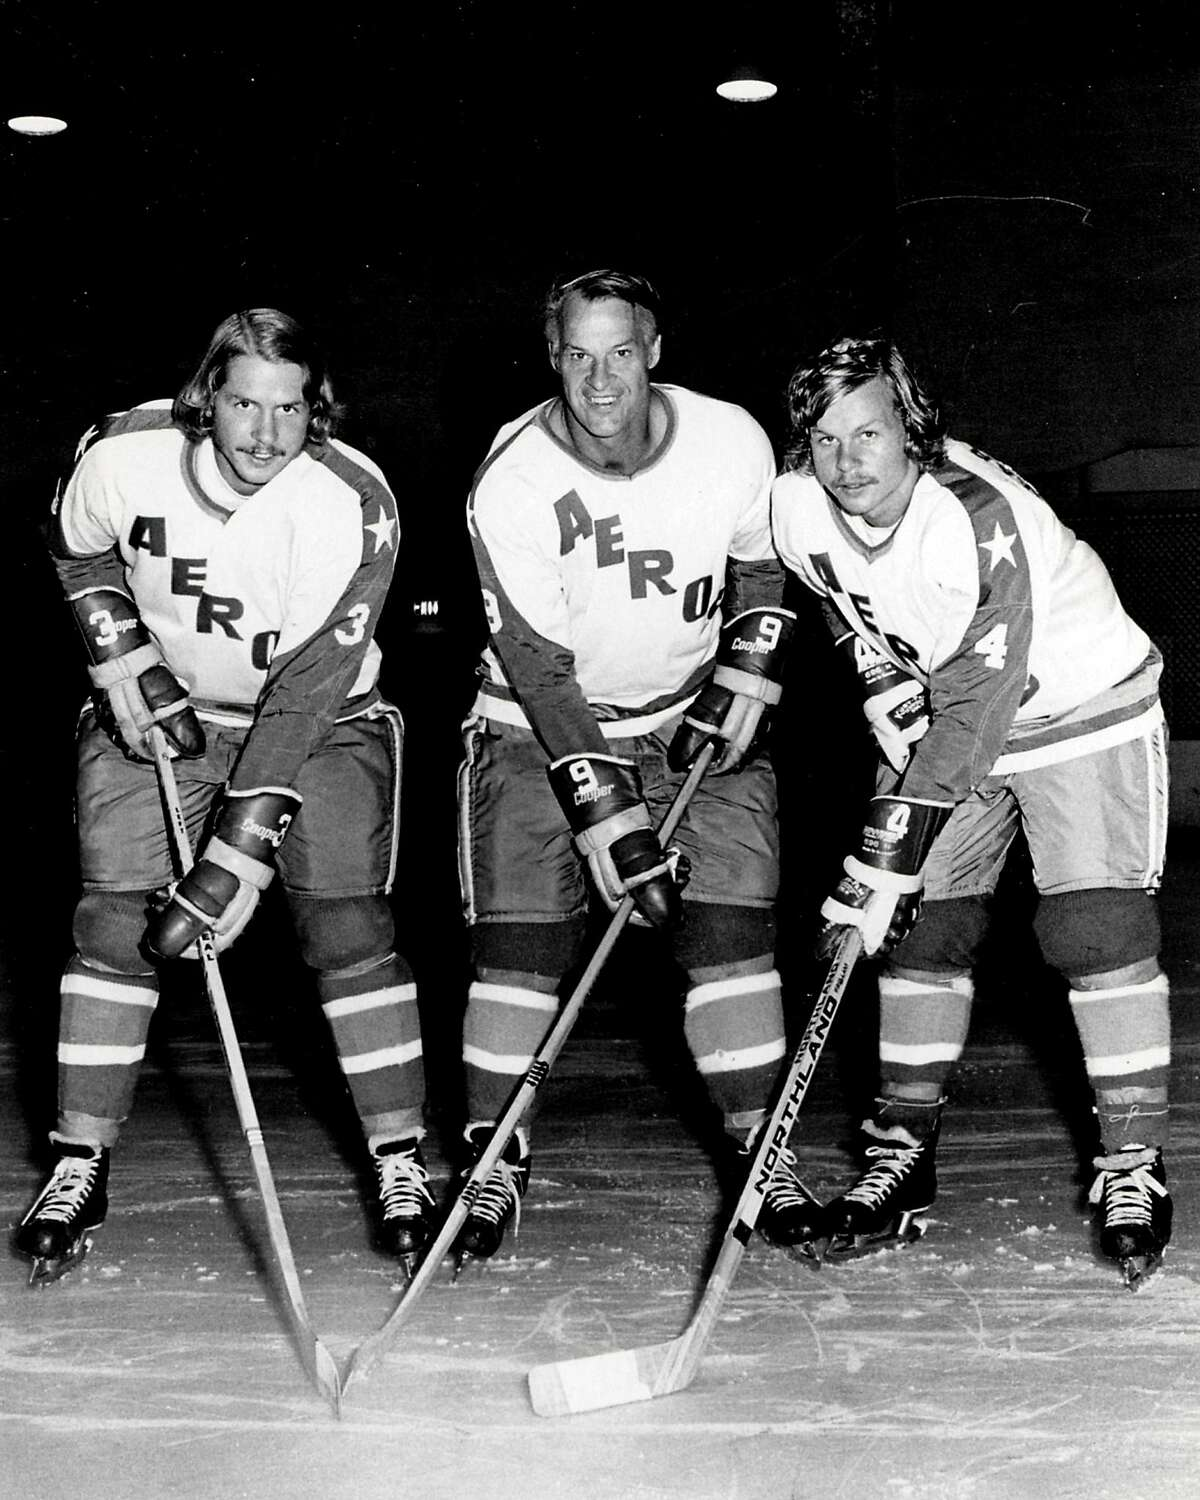 """In an Aug. 3, 1973 file photo, former Detroit Red Wings great Gordie Howe, center, is flanked by sons Marty, left, and Mark as they try their new Houston Aeros uniforms in St. Clair Shores, Mich. A made-for-TV movie, """"Mr. Hockey: The Gordie Howe Story,"""" focuses on the season the Hall of Famer teamed up with his sons in Houston. The U.S. premiere of the film is Saturday, May 4, 2013. (AP Photo/The Macomb Daily, David Posavetz, FILE)"""